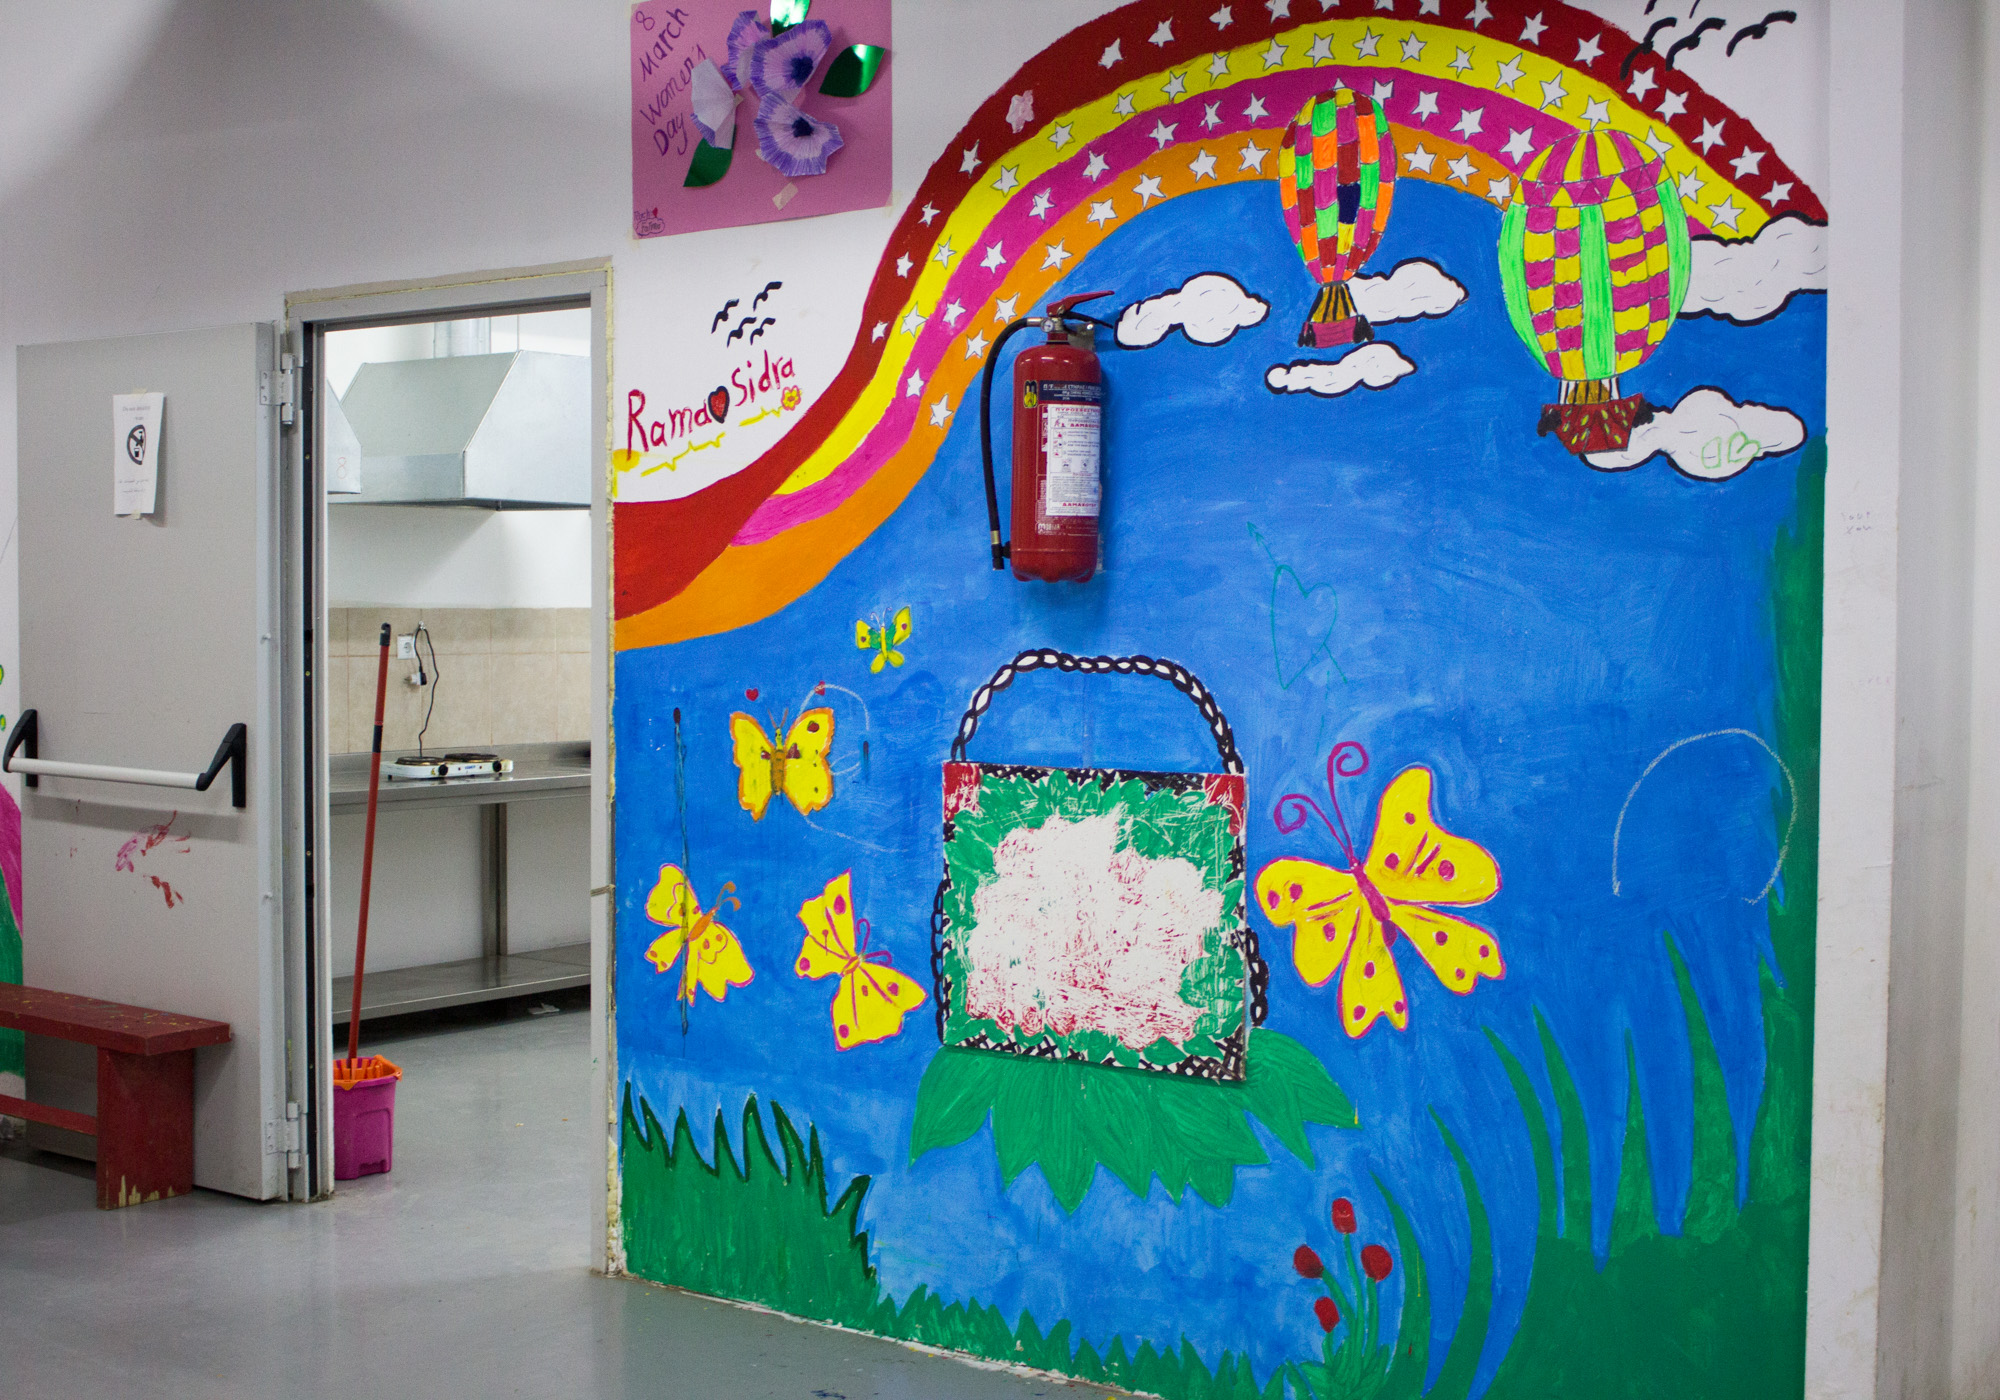 Throughout Elpida Home, murals line the walls. The communal kitchen is around the corner of this fluorescent mural. Residents can make their own meals and chat through the window that peers out into the tea room. (Photo by Catherine Clark/GroundTruth)